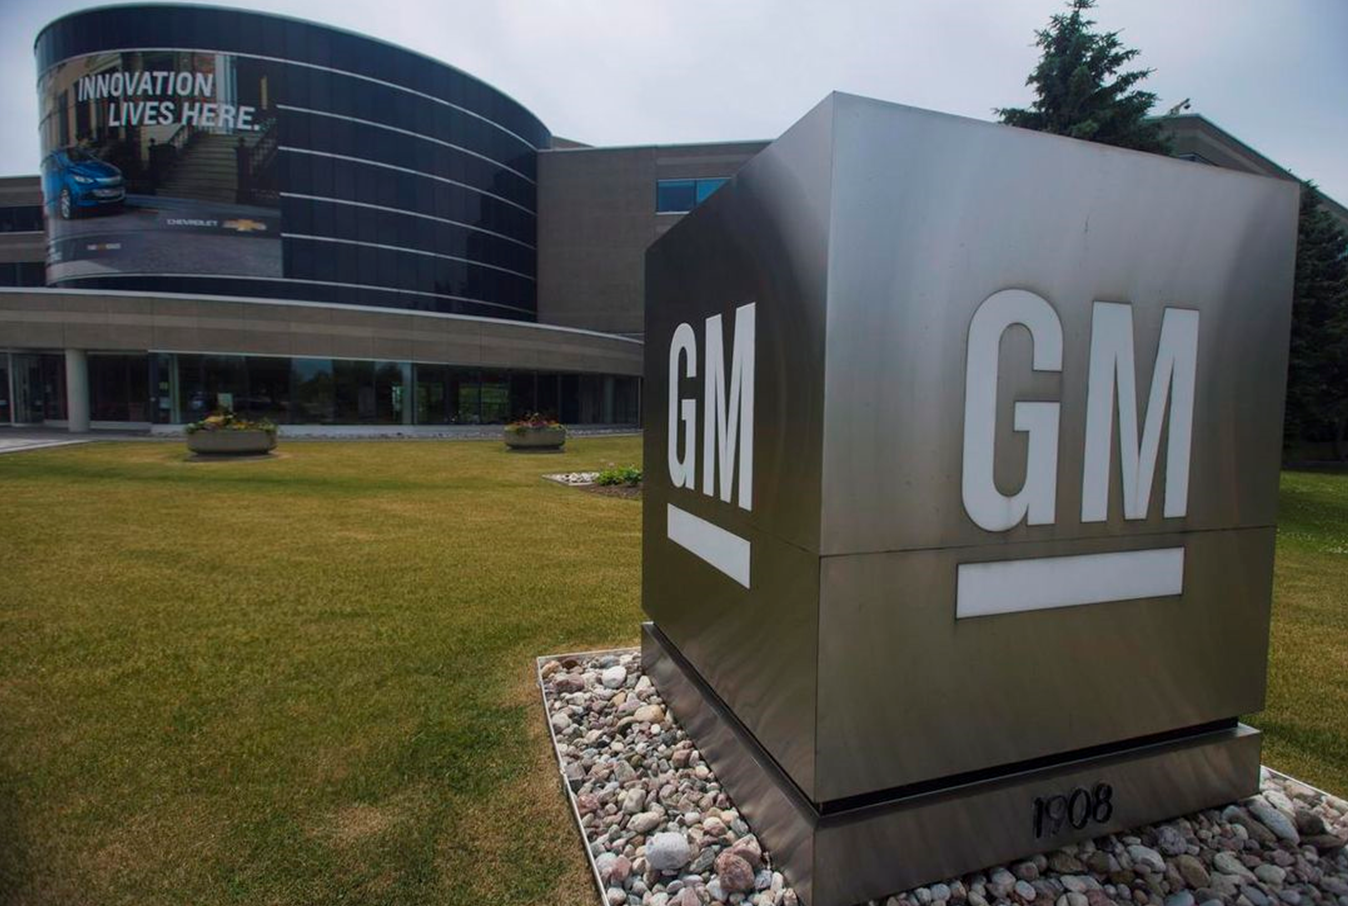 Indiana's GM Plant to Stay Open as Company Plans to Close Five Plants and Cut 15,000 + Jobs